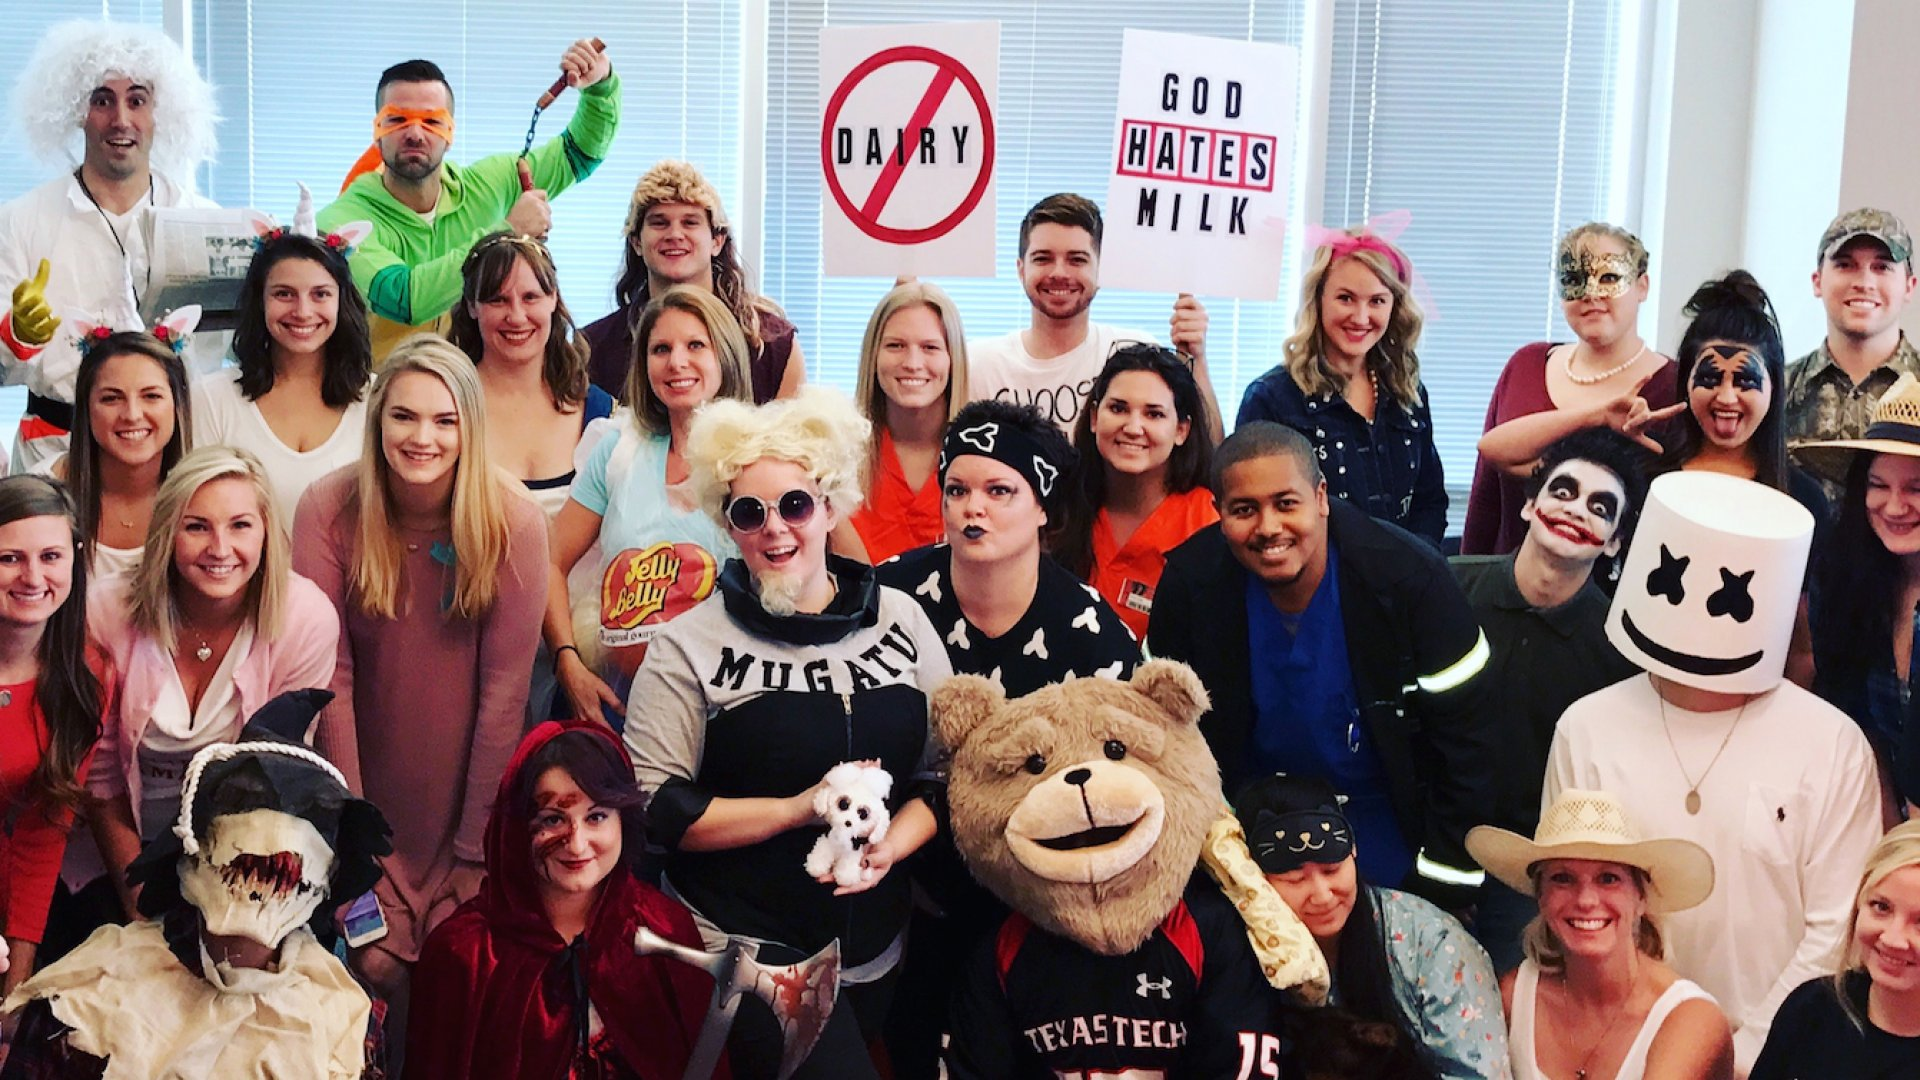 LiquidAgents Healthcare hosts an annual Halloween costume contest. Everyone is encouraged to wear his or her wackiest costume creation and the entire office votes on the top three favorites.